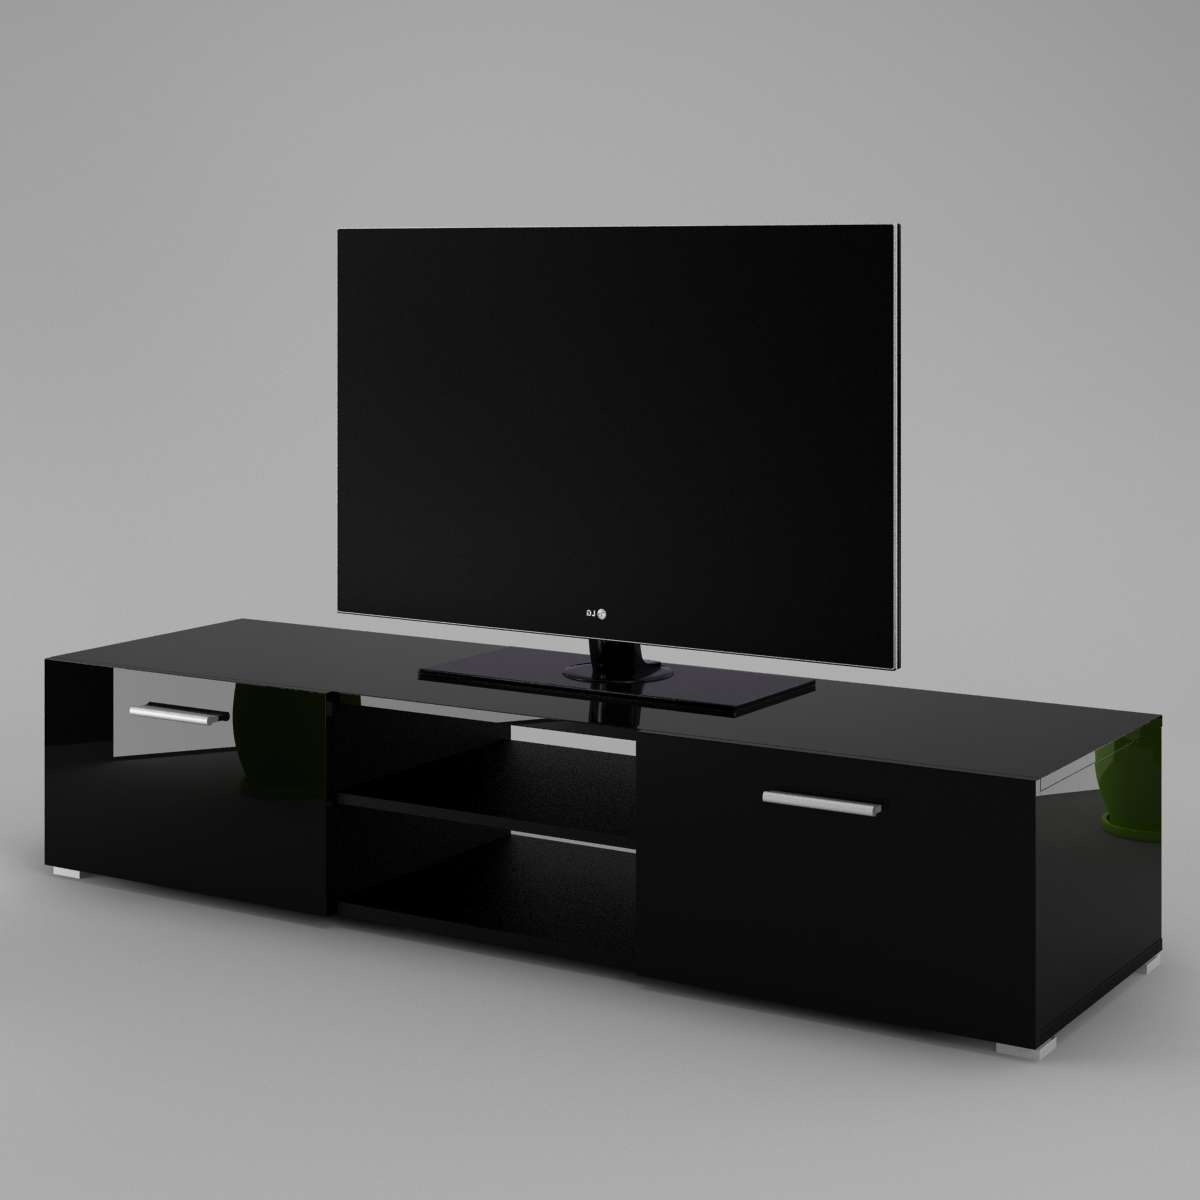 Tv Cabinet Luna – Labi Furniturelabi Furniture Intended For Tv Cabinets Black High Gloss (View 20 of 20)